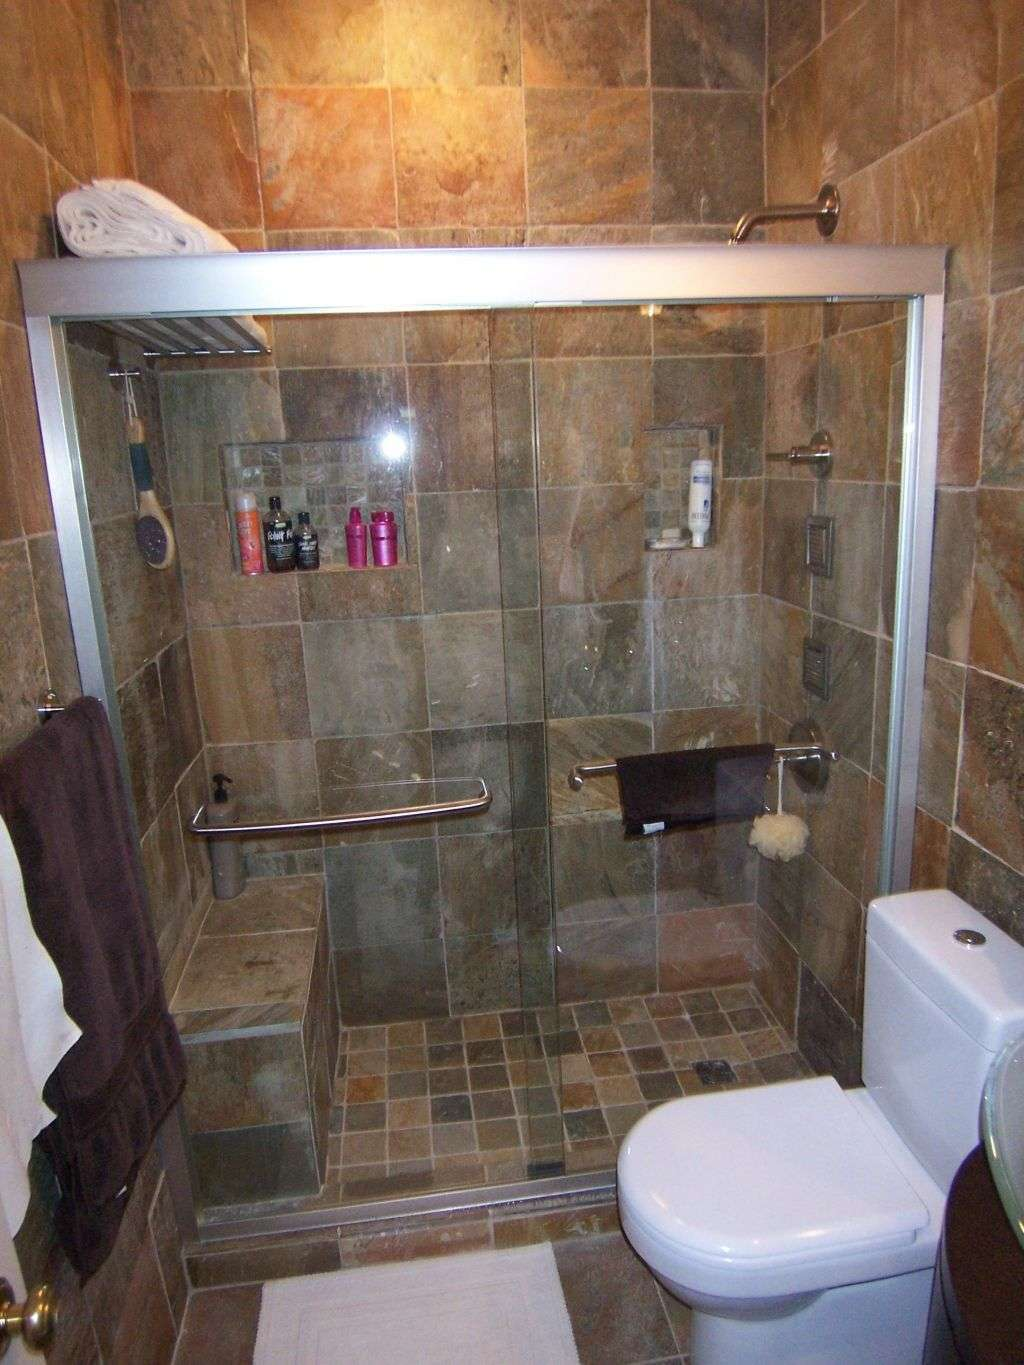 40 wonderful pictures and ideas of 1920s bathroom tile designs on Small Space Small Bathroom Tiles Design  id=83927